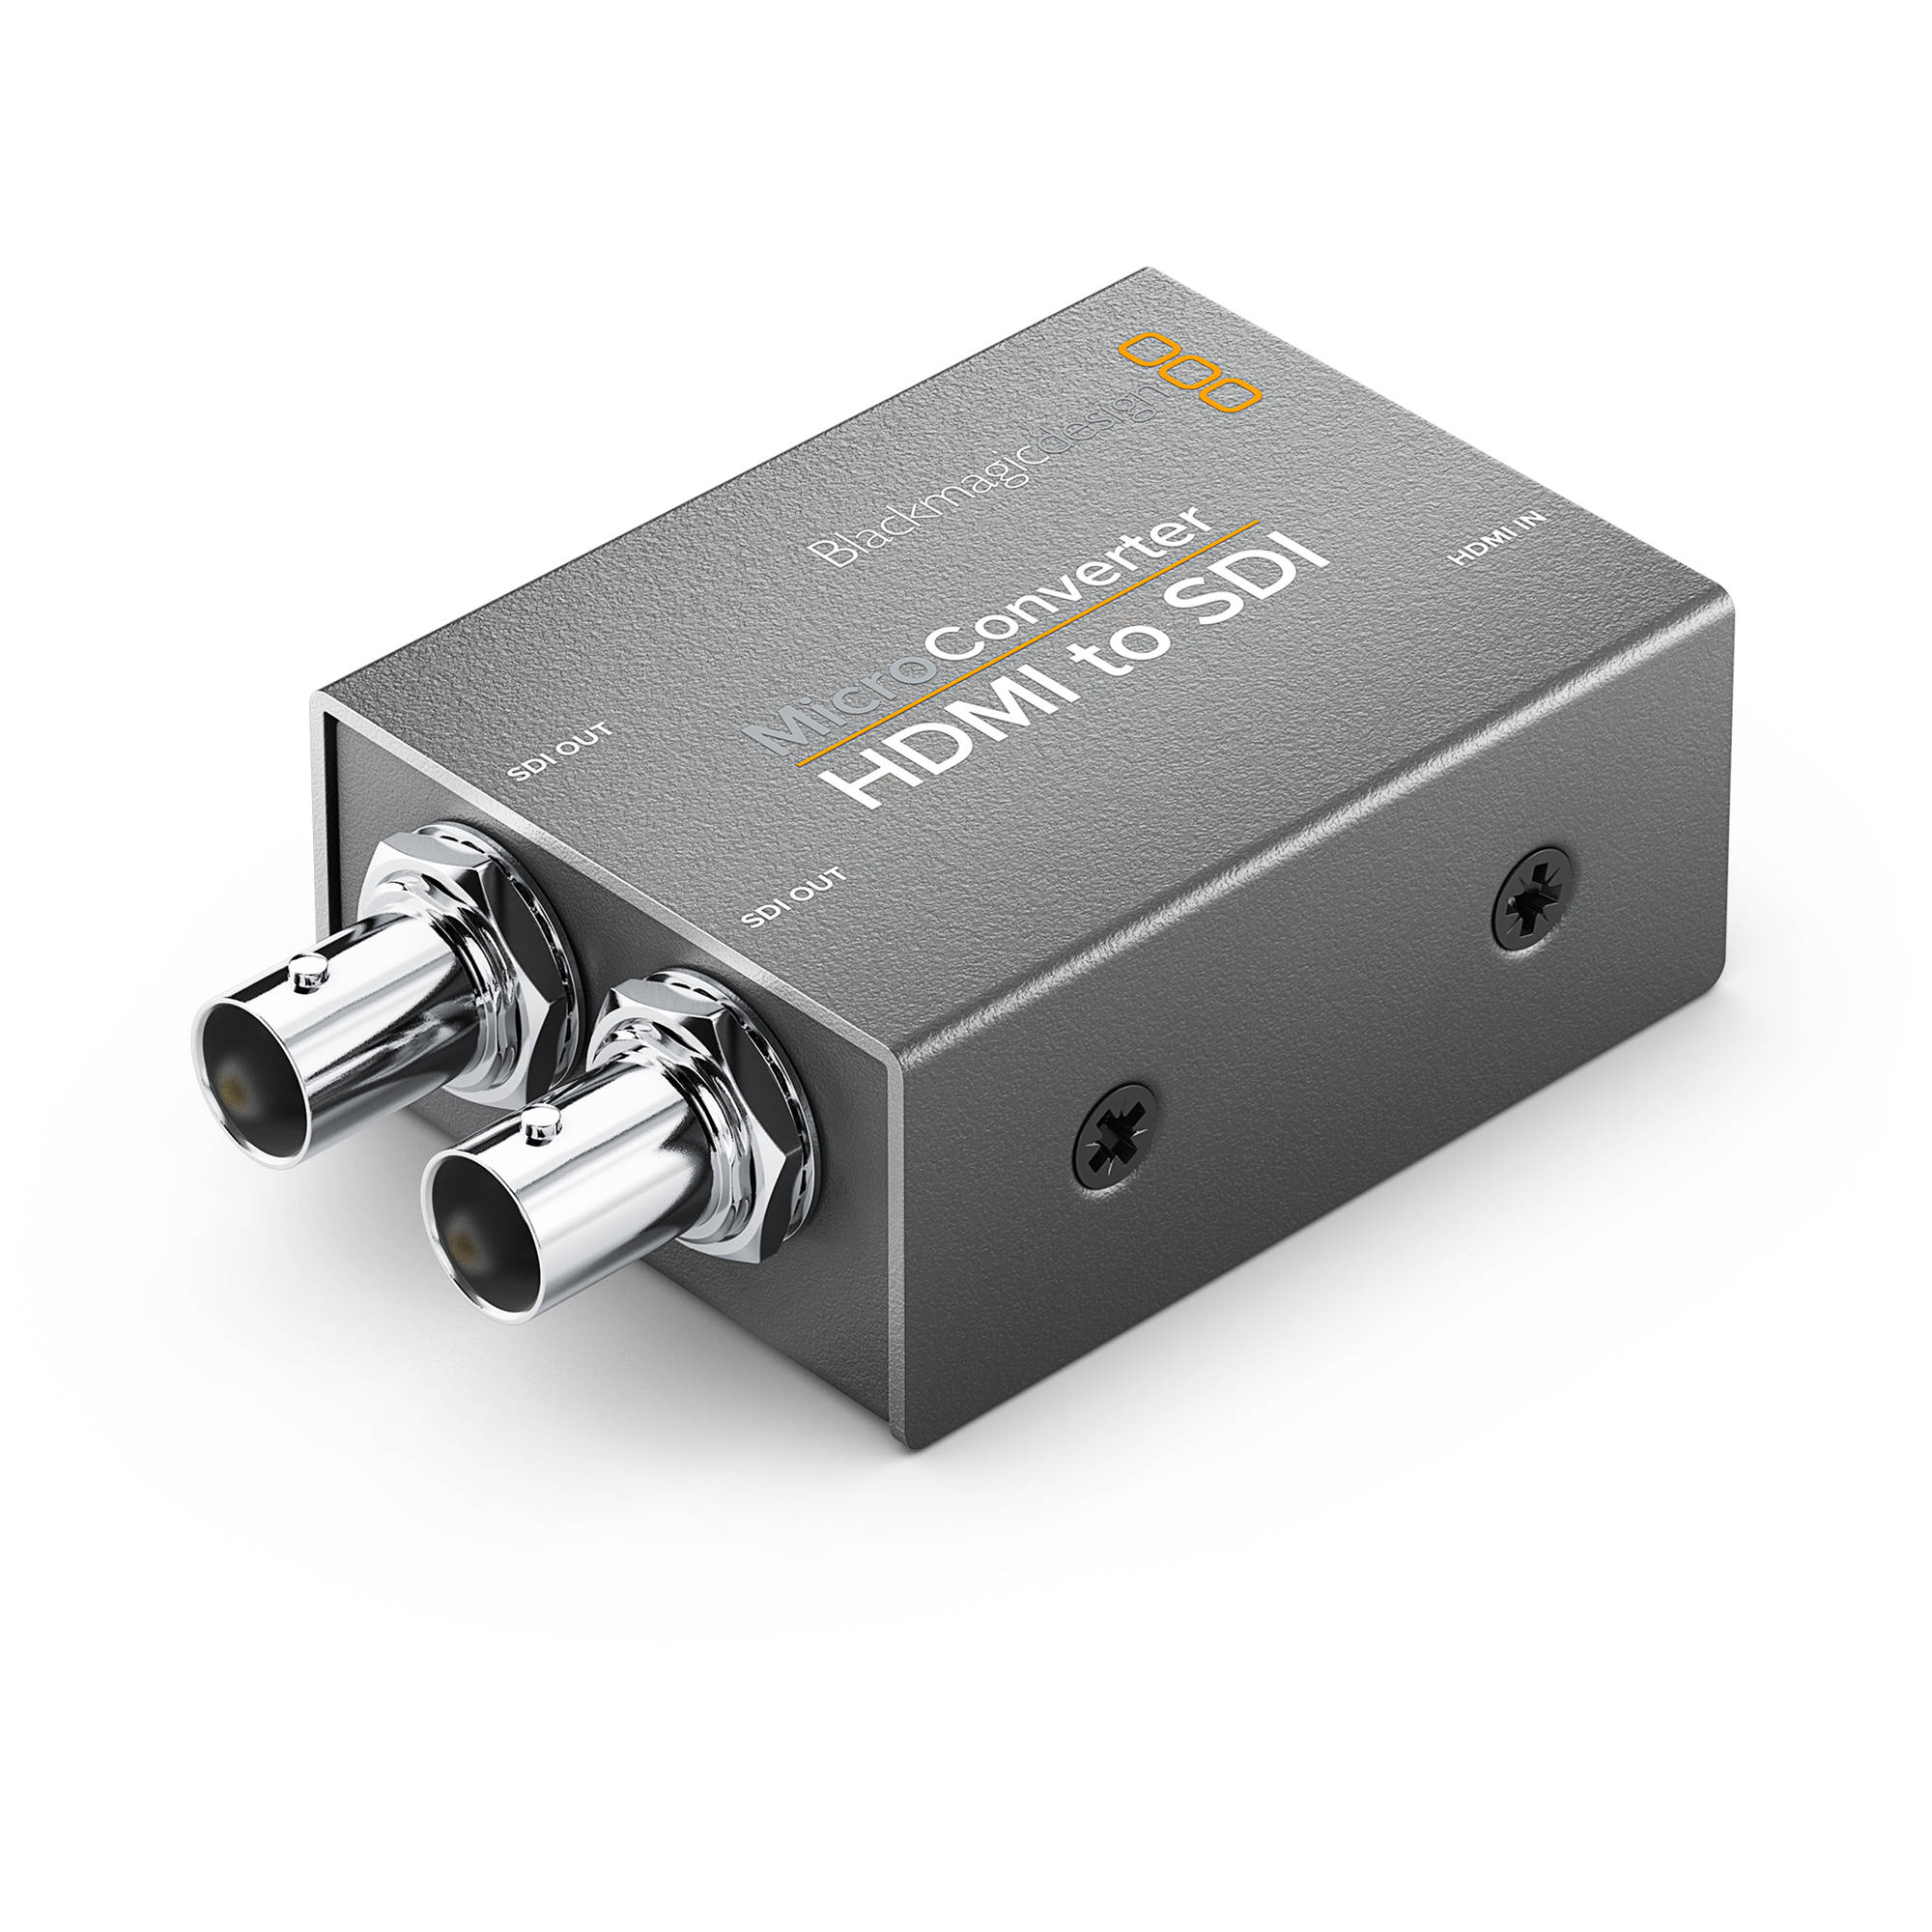 Blackmagic Design Micro Converter Hdmi To Sdi Convcmic Hs Wpsu Telephone Ring Generator Using Switching Supply With Power